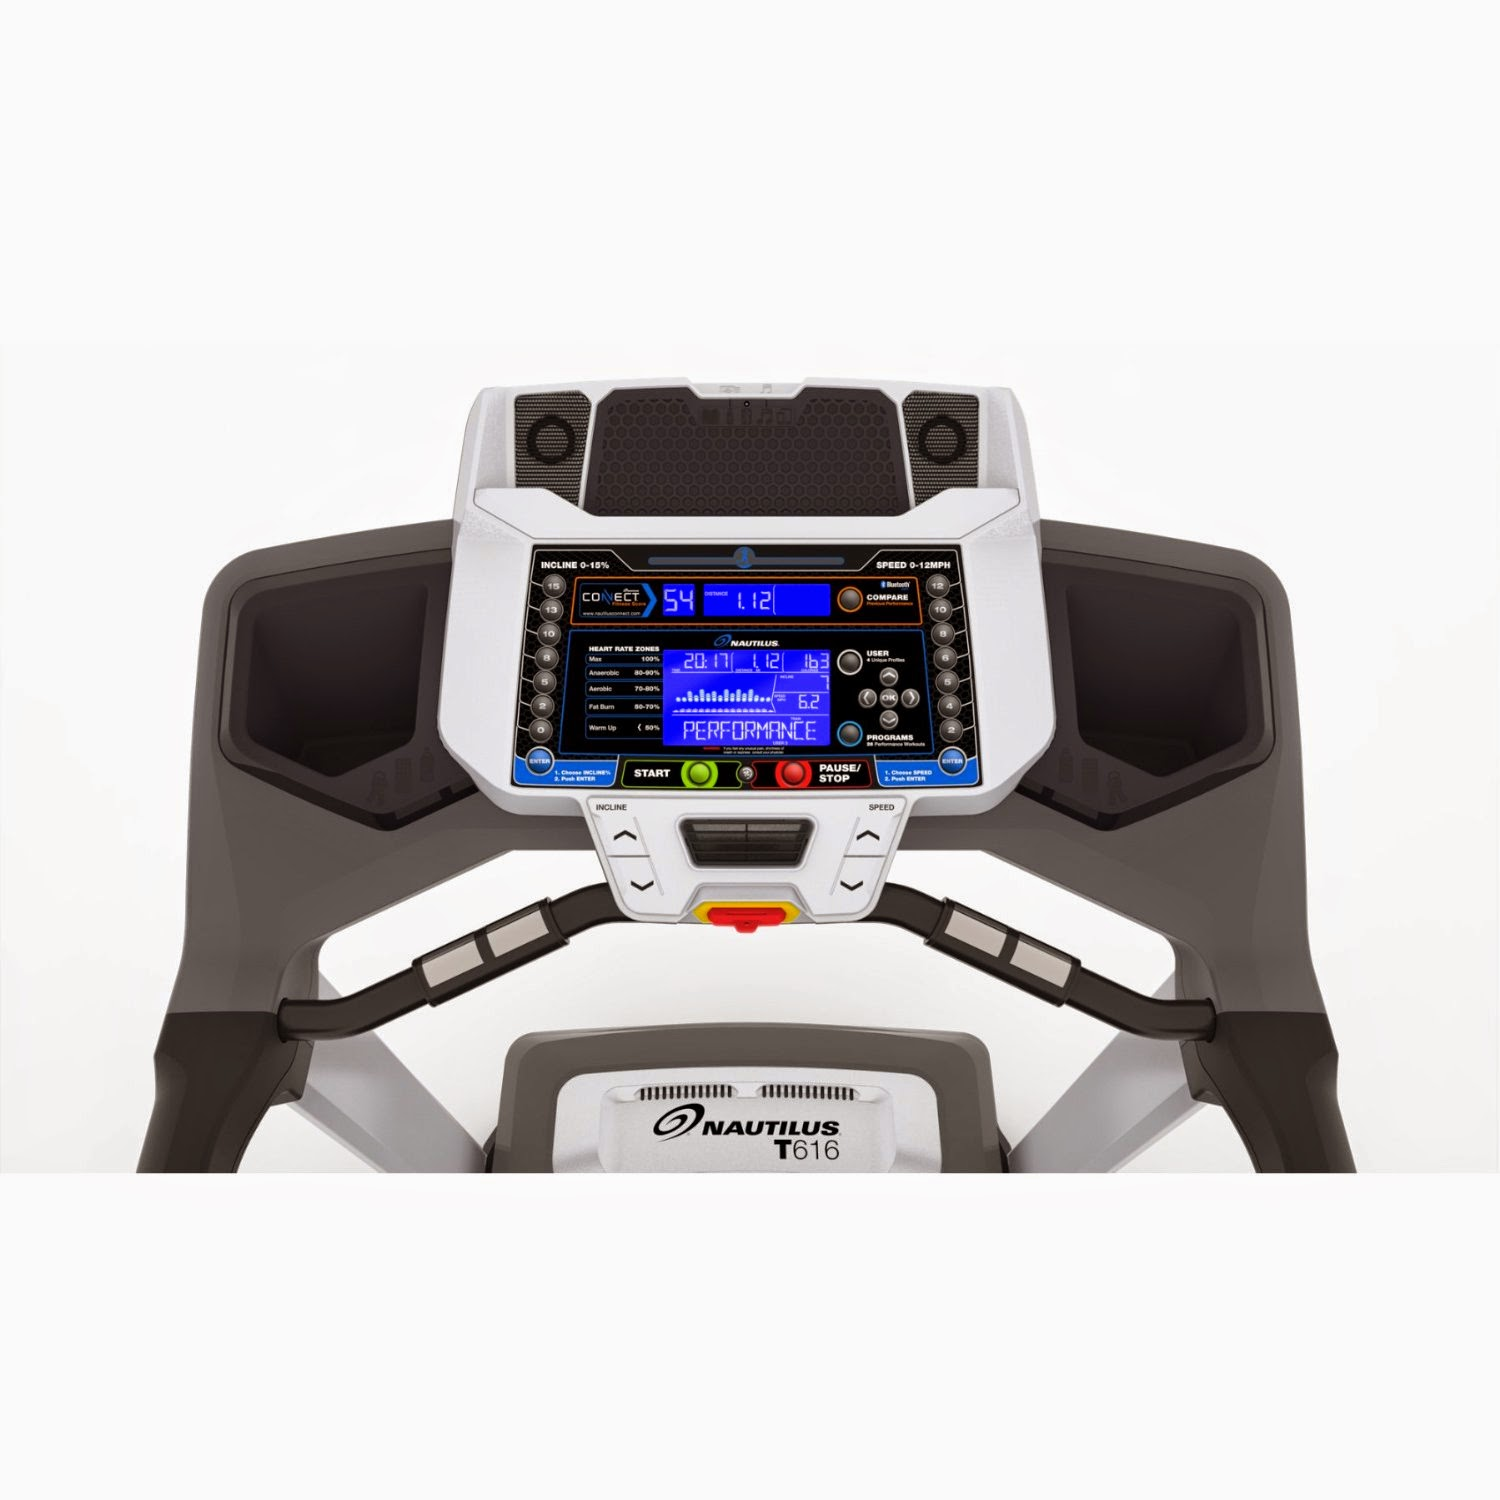 Nautilus T616 Console with blue backlit  Dual Track (2 window) LCD display